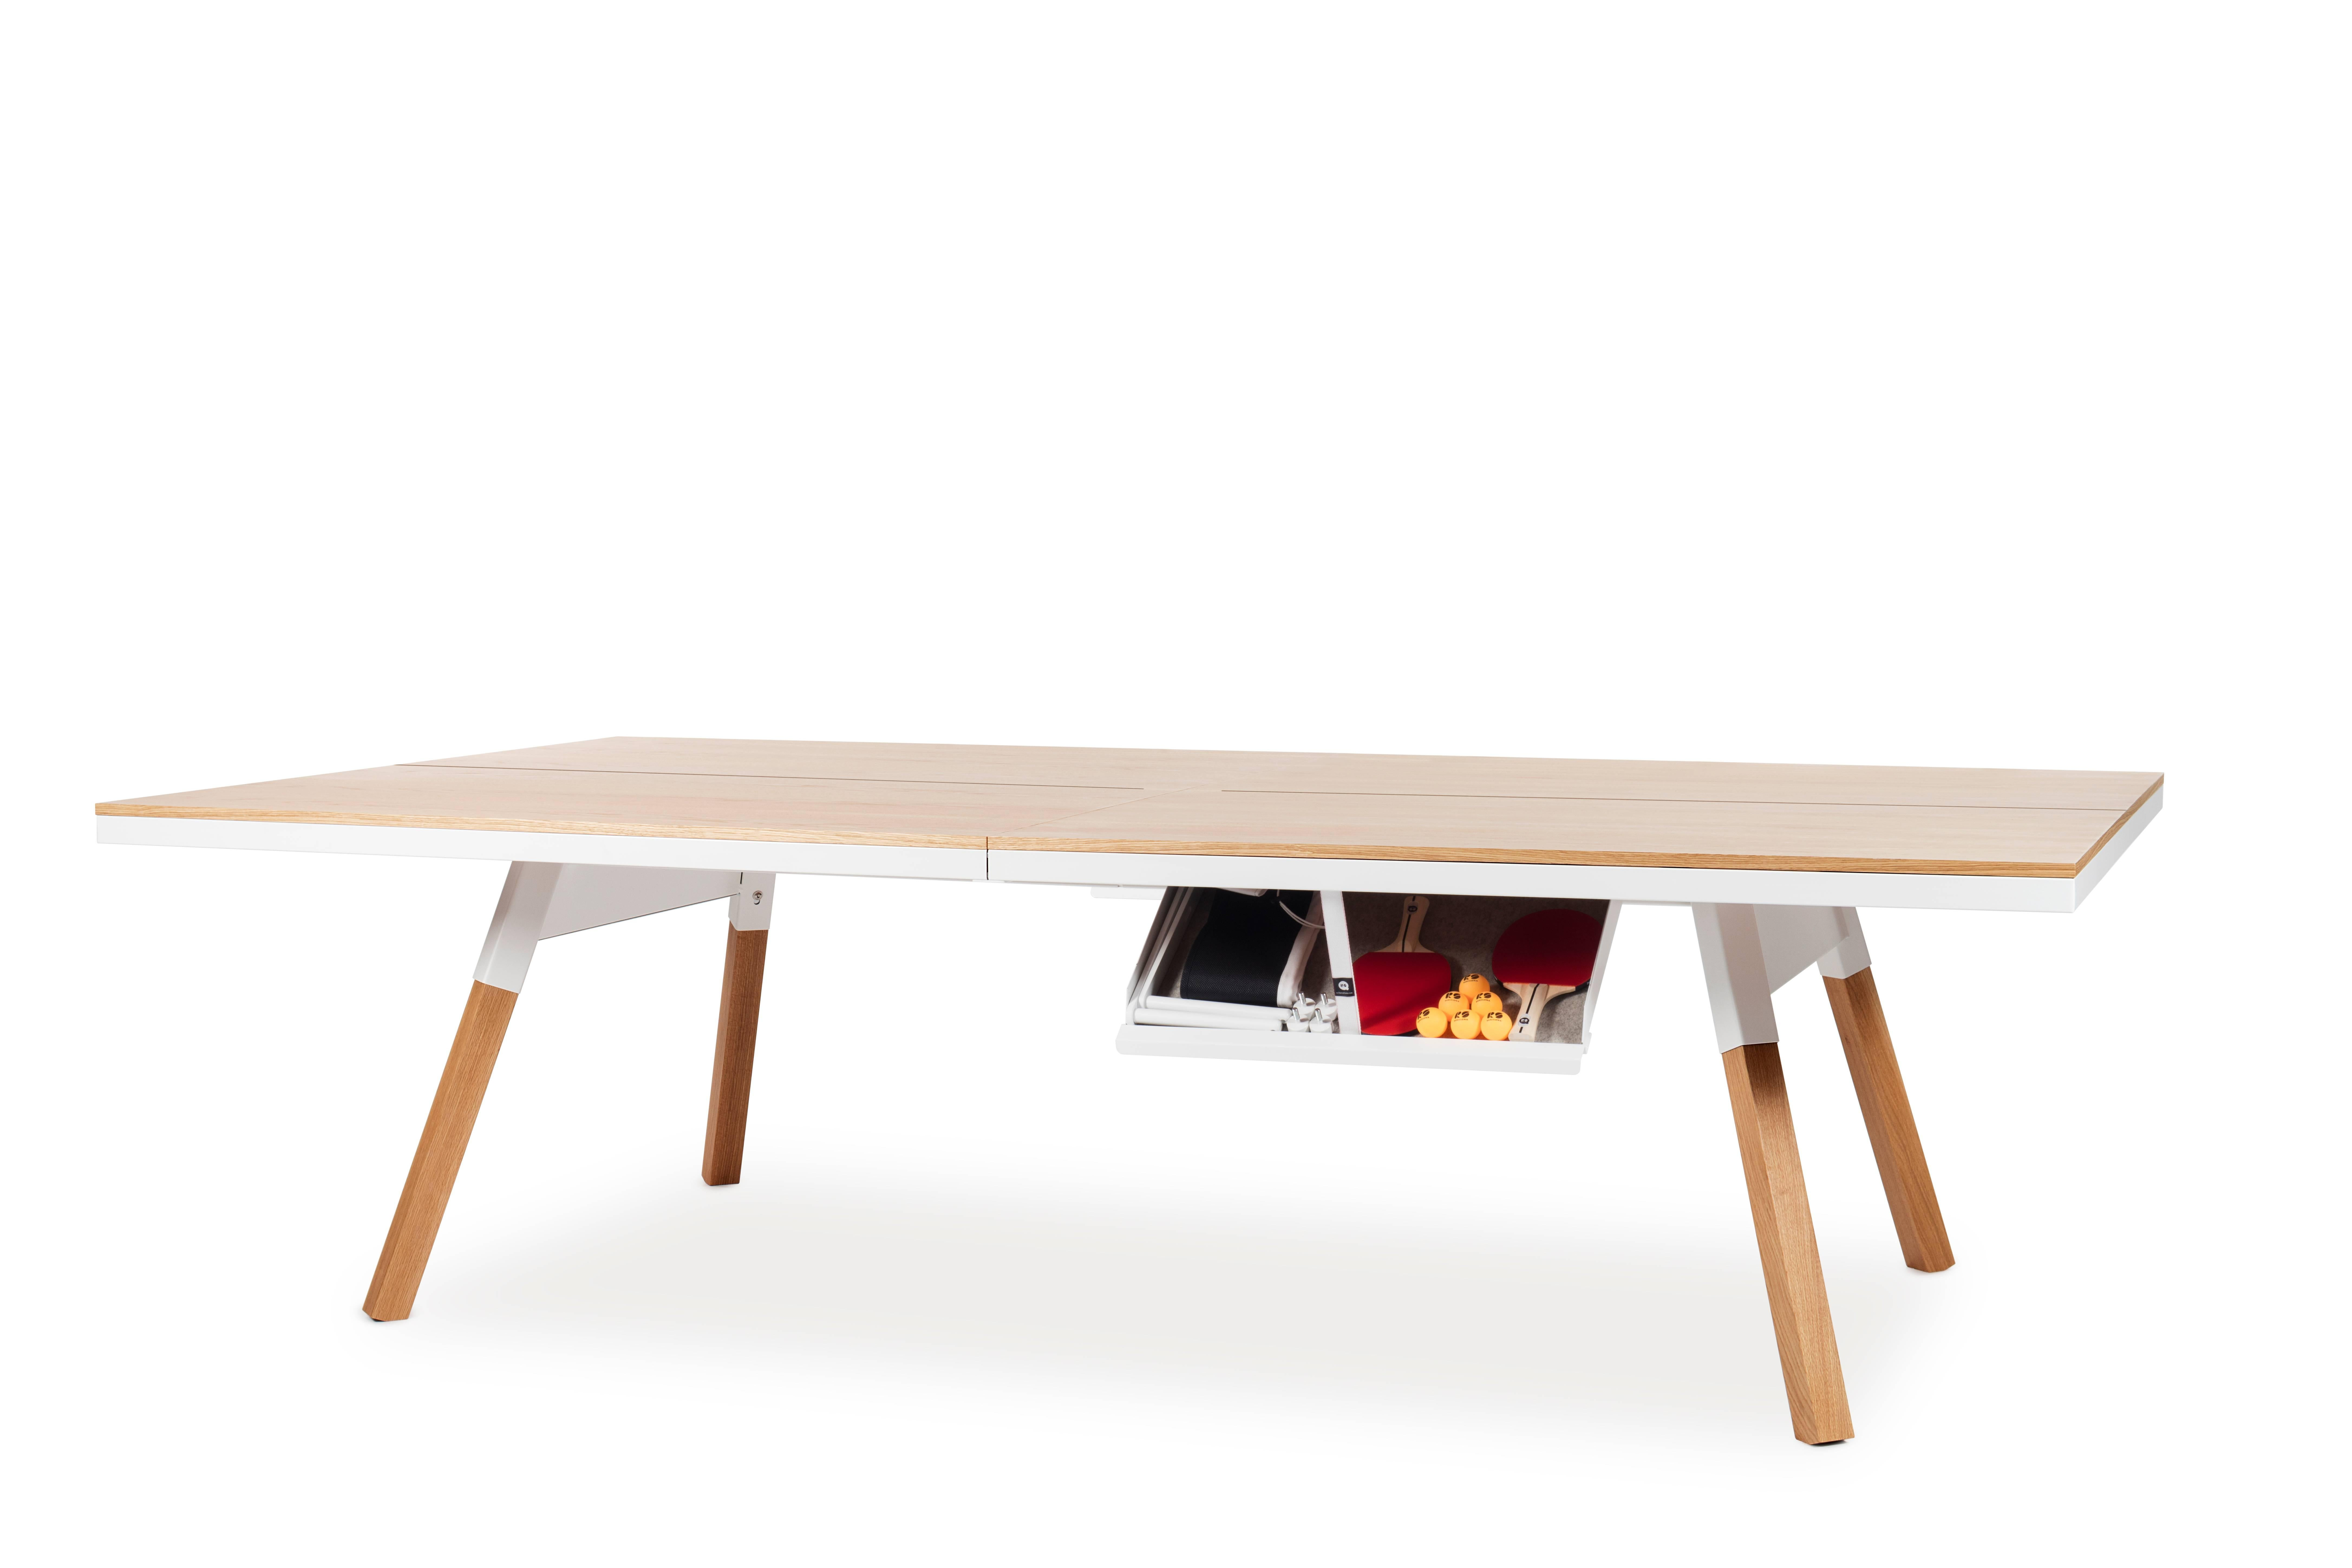 Modern You U0026 Me Wooden Top Standard Ping Pong Table In Oak And White By RS